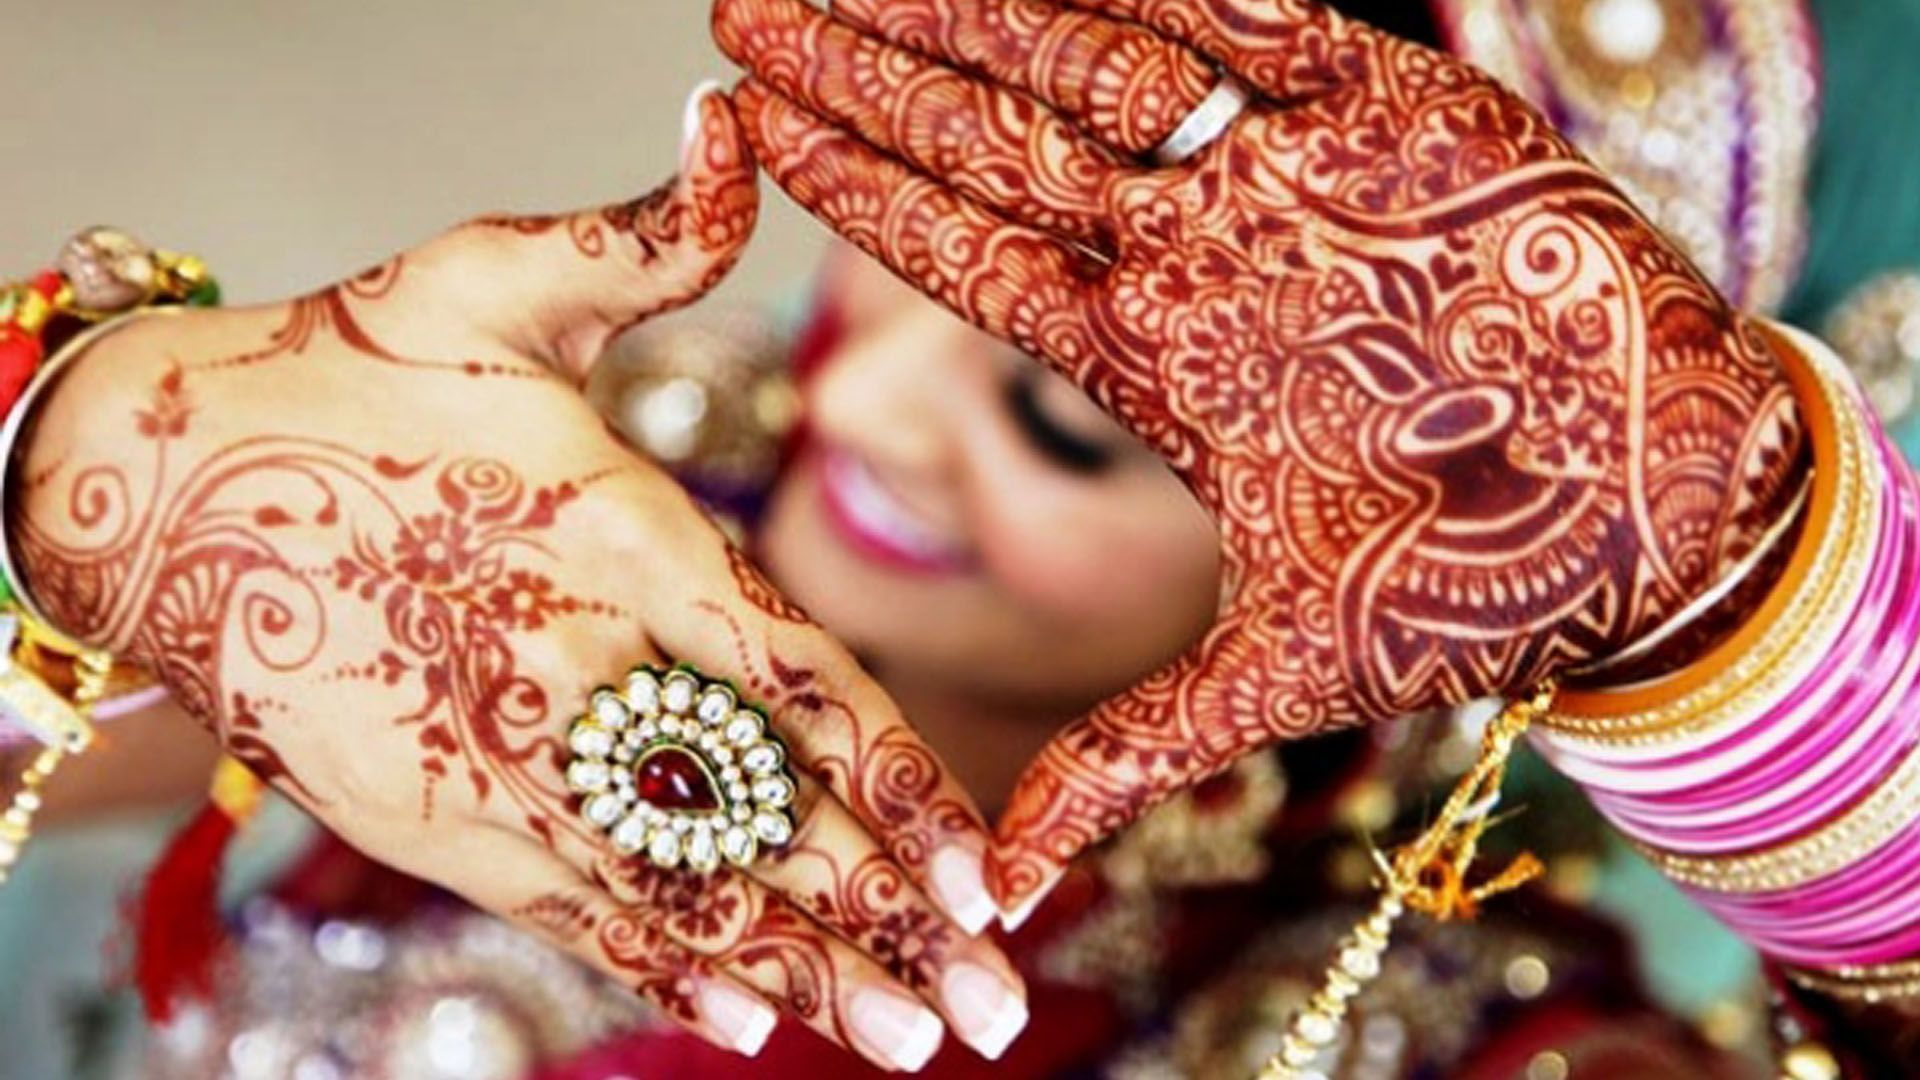 Indian Wedding Wallpapers - Top Free Indian Wedding Backgrounds ...